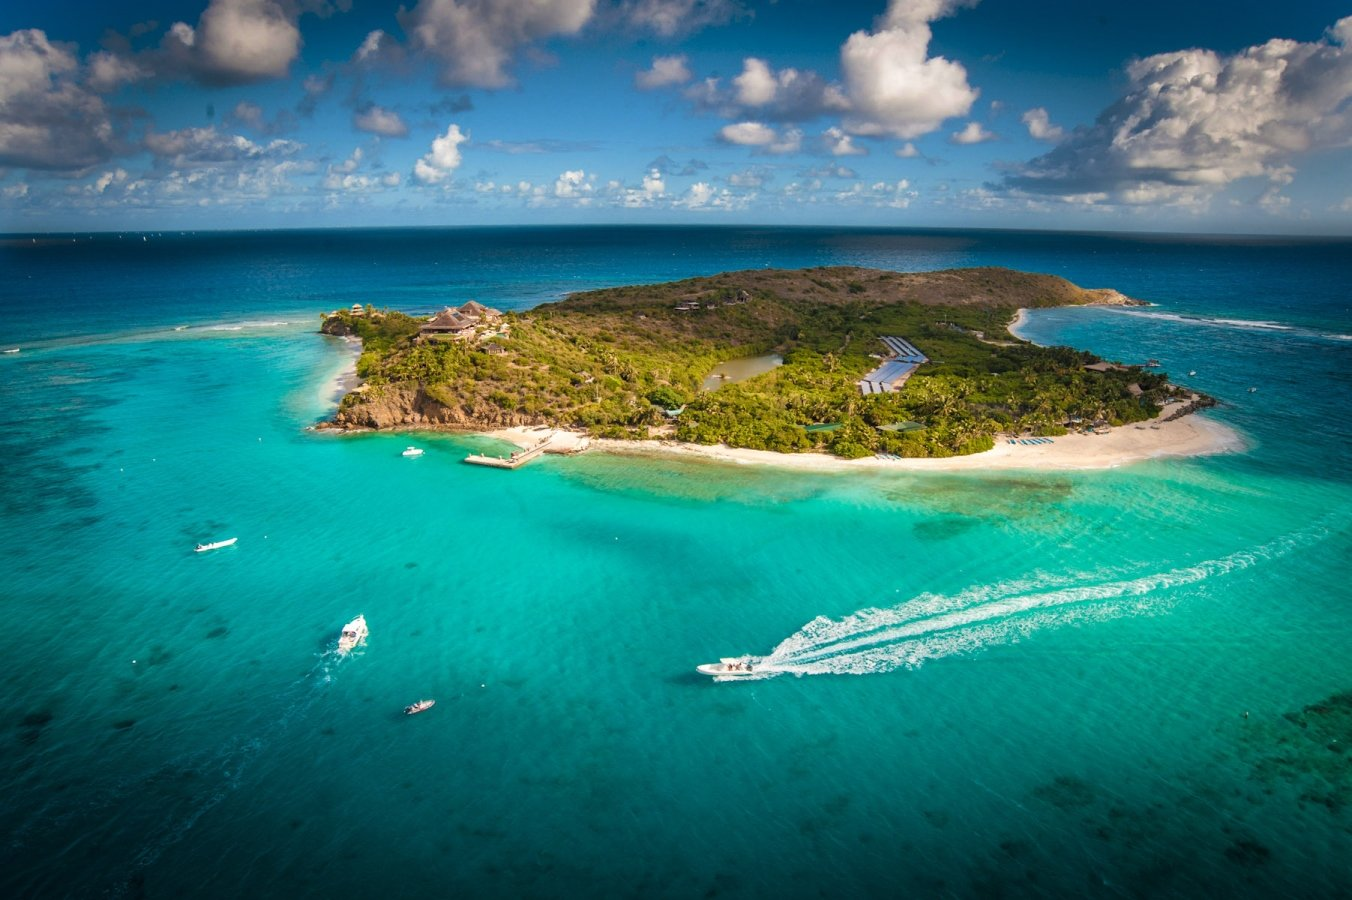 Image of Richand Branson's Necker Island